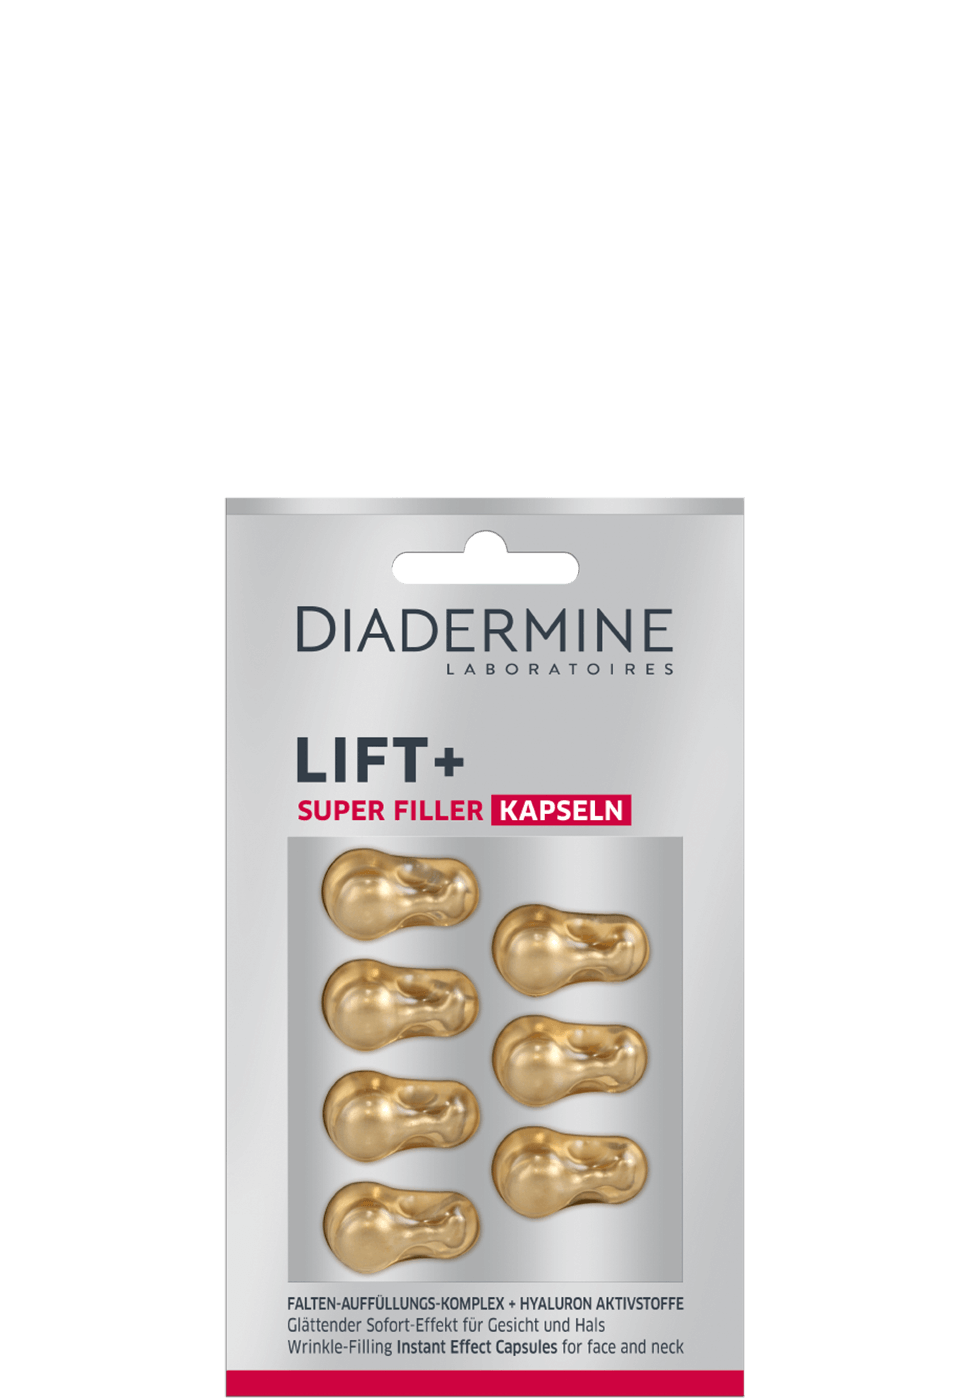 diadermine_de_lift_plus_super_filler_kapseln_970x1400